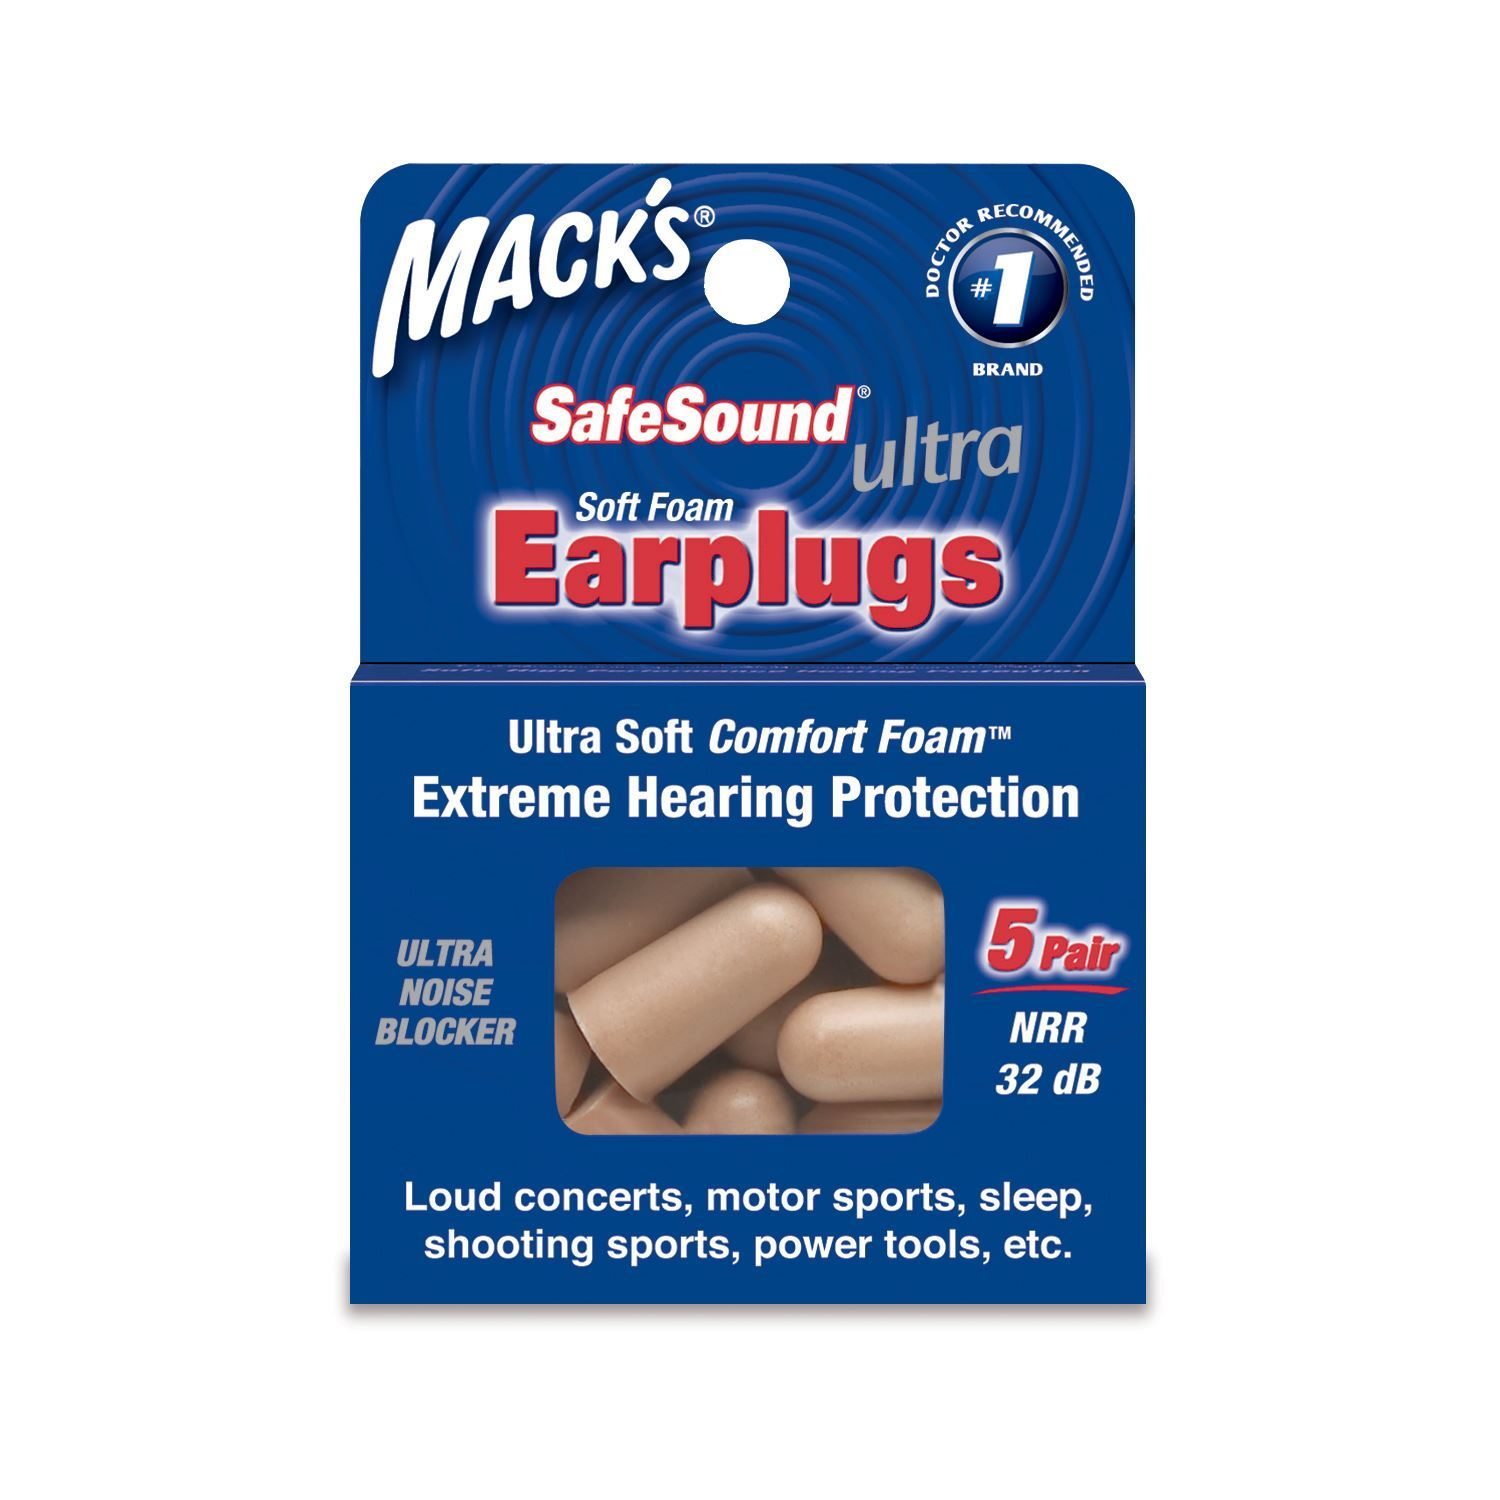 Macks-Ultra-Ear-plugs-Soft-Foam-Comfort-Earplugs-Noise-Blocker-Sleep-Work